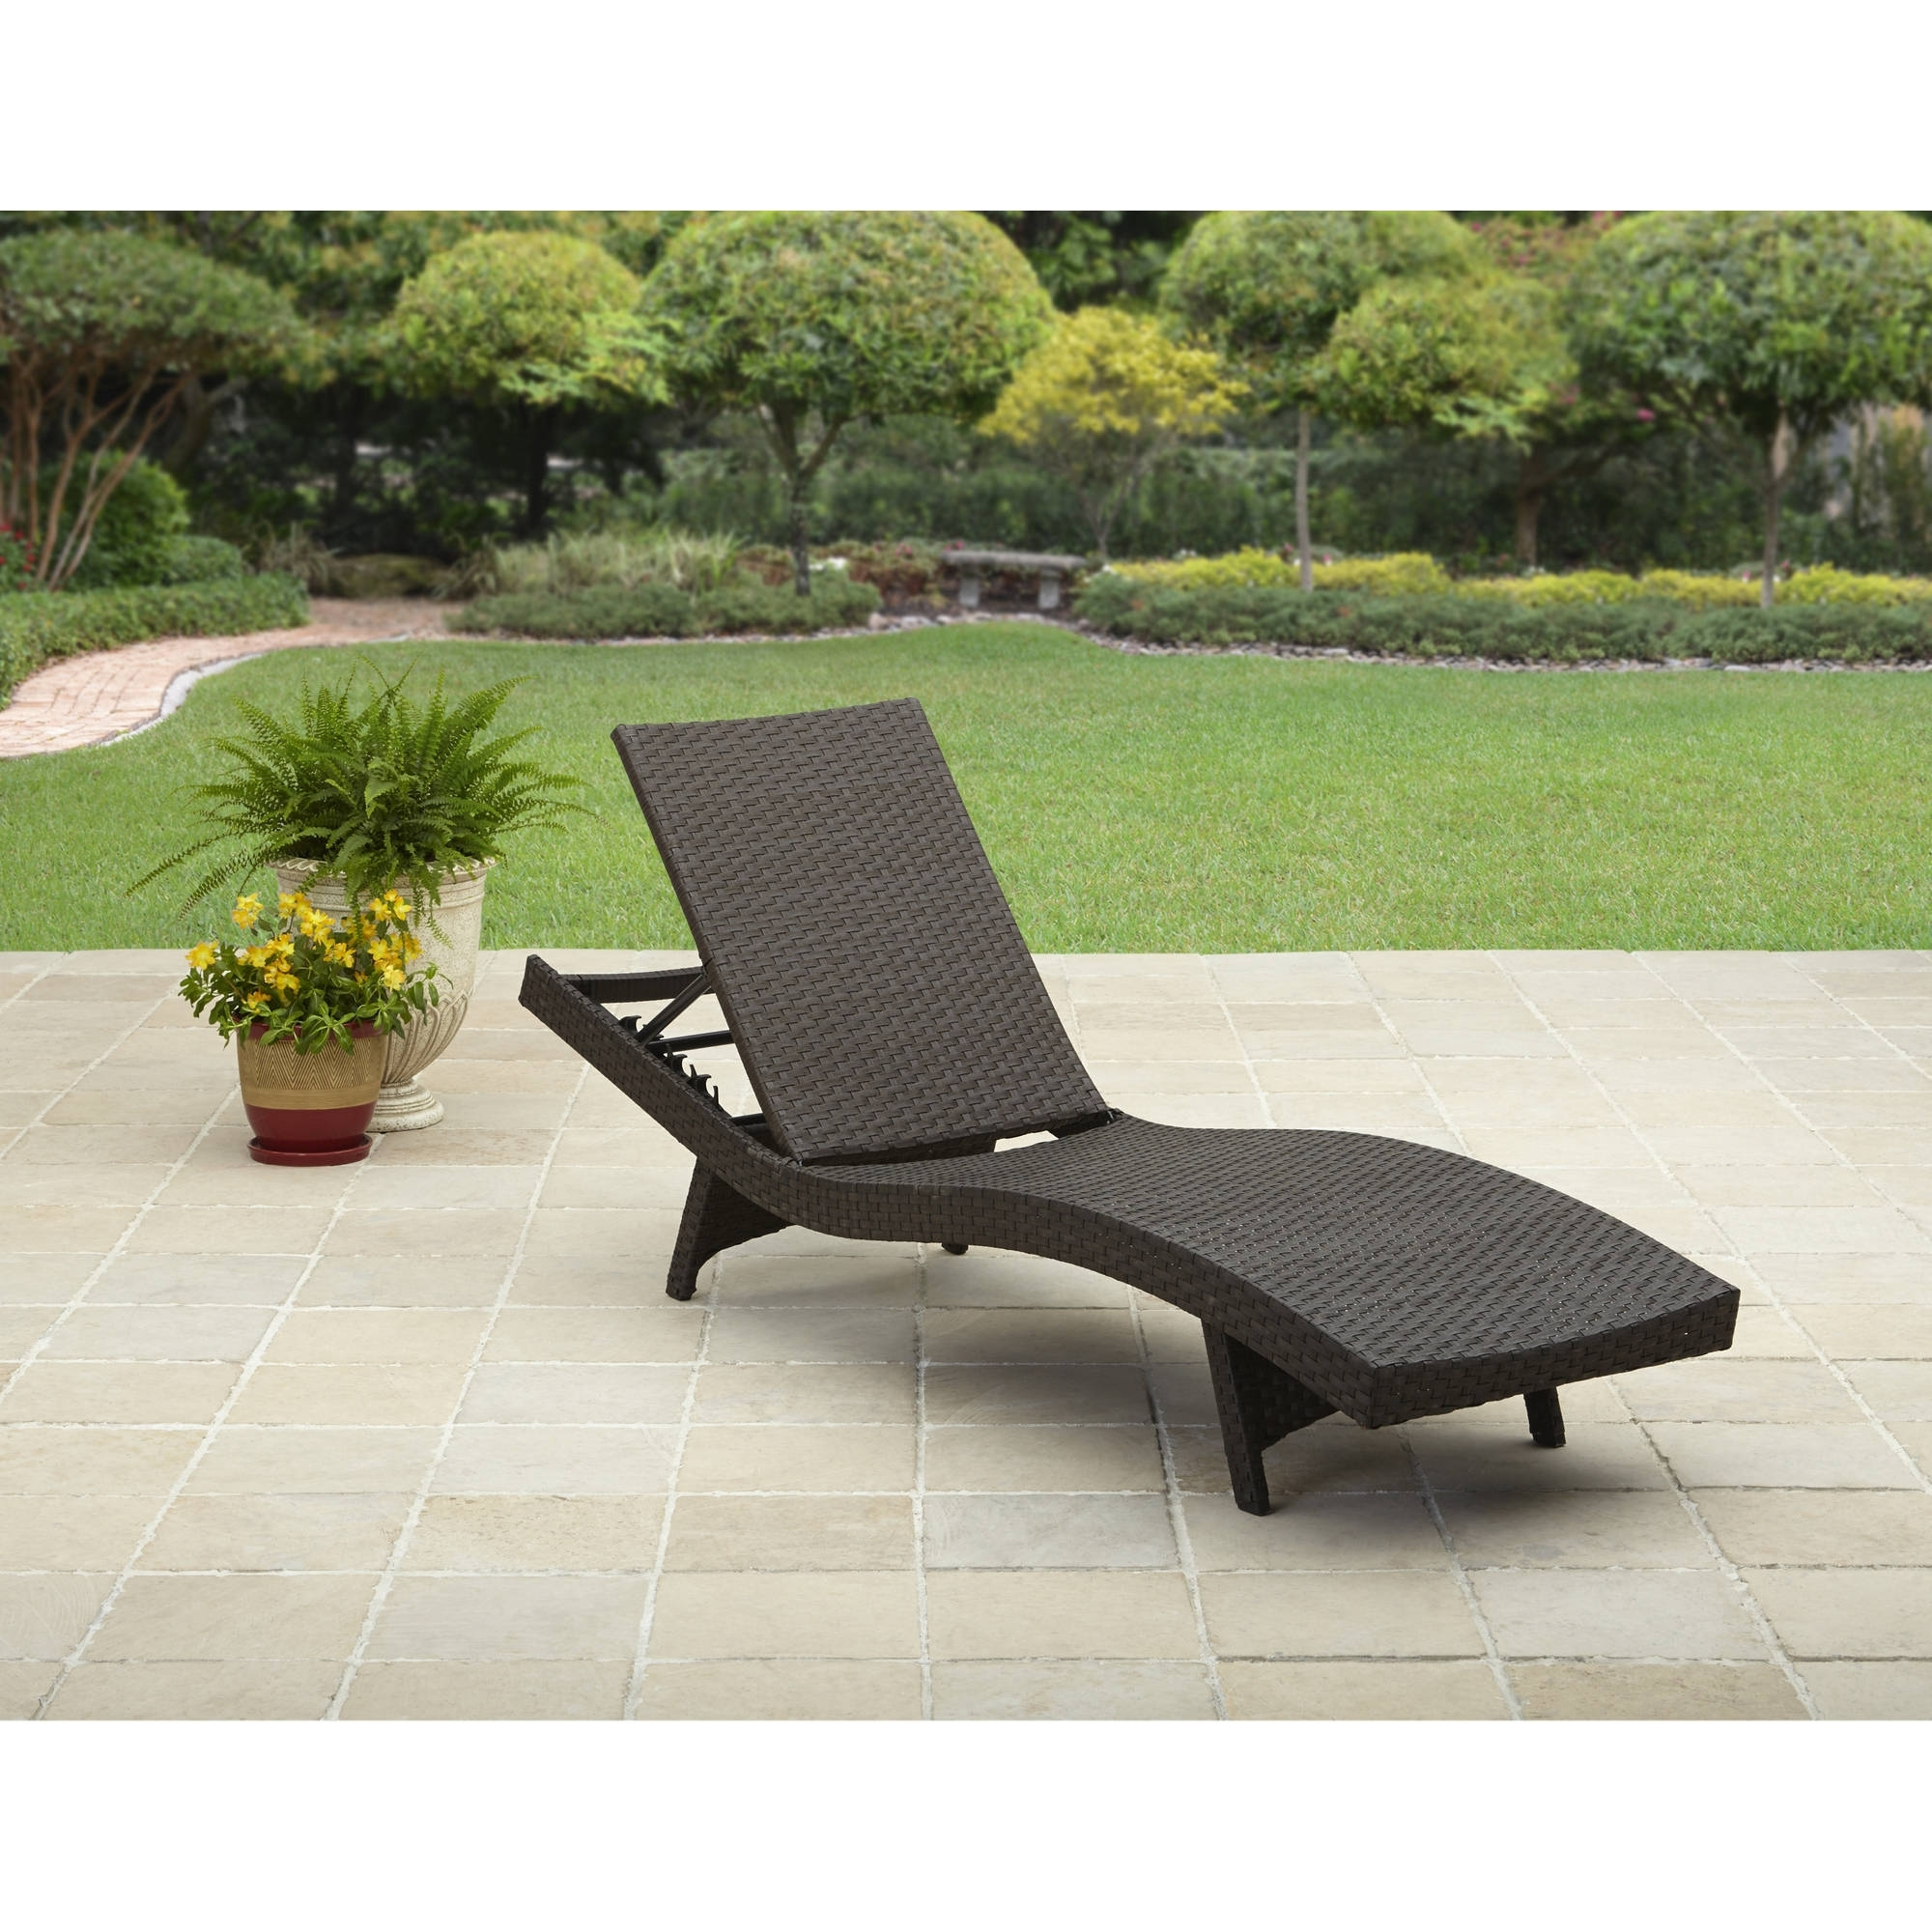 Cheap Folding Chaise Lounge Chairs For Outdoor Throughout 2018 Chair Cheap Outdoor Lounge Chairs Walmart Within Patio Chaise (View 12 of 15)